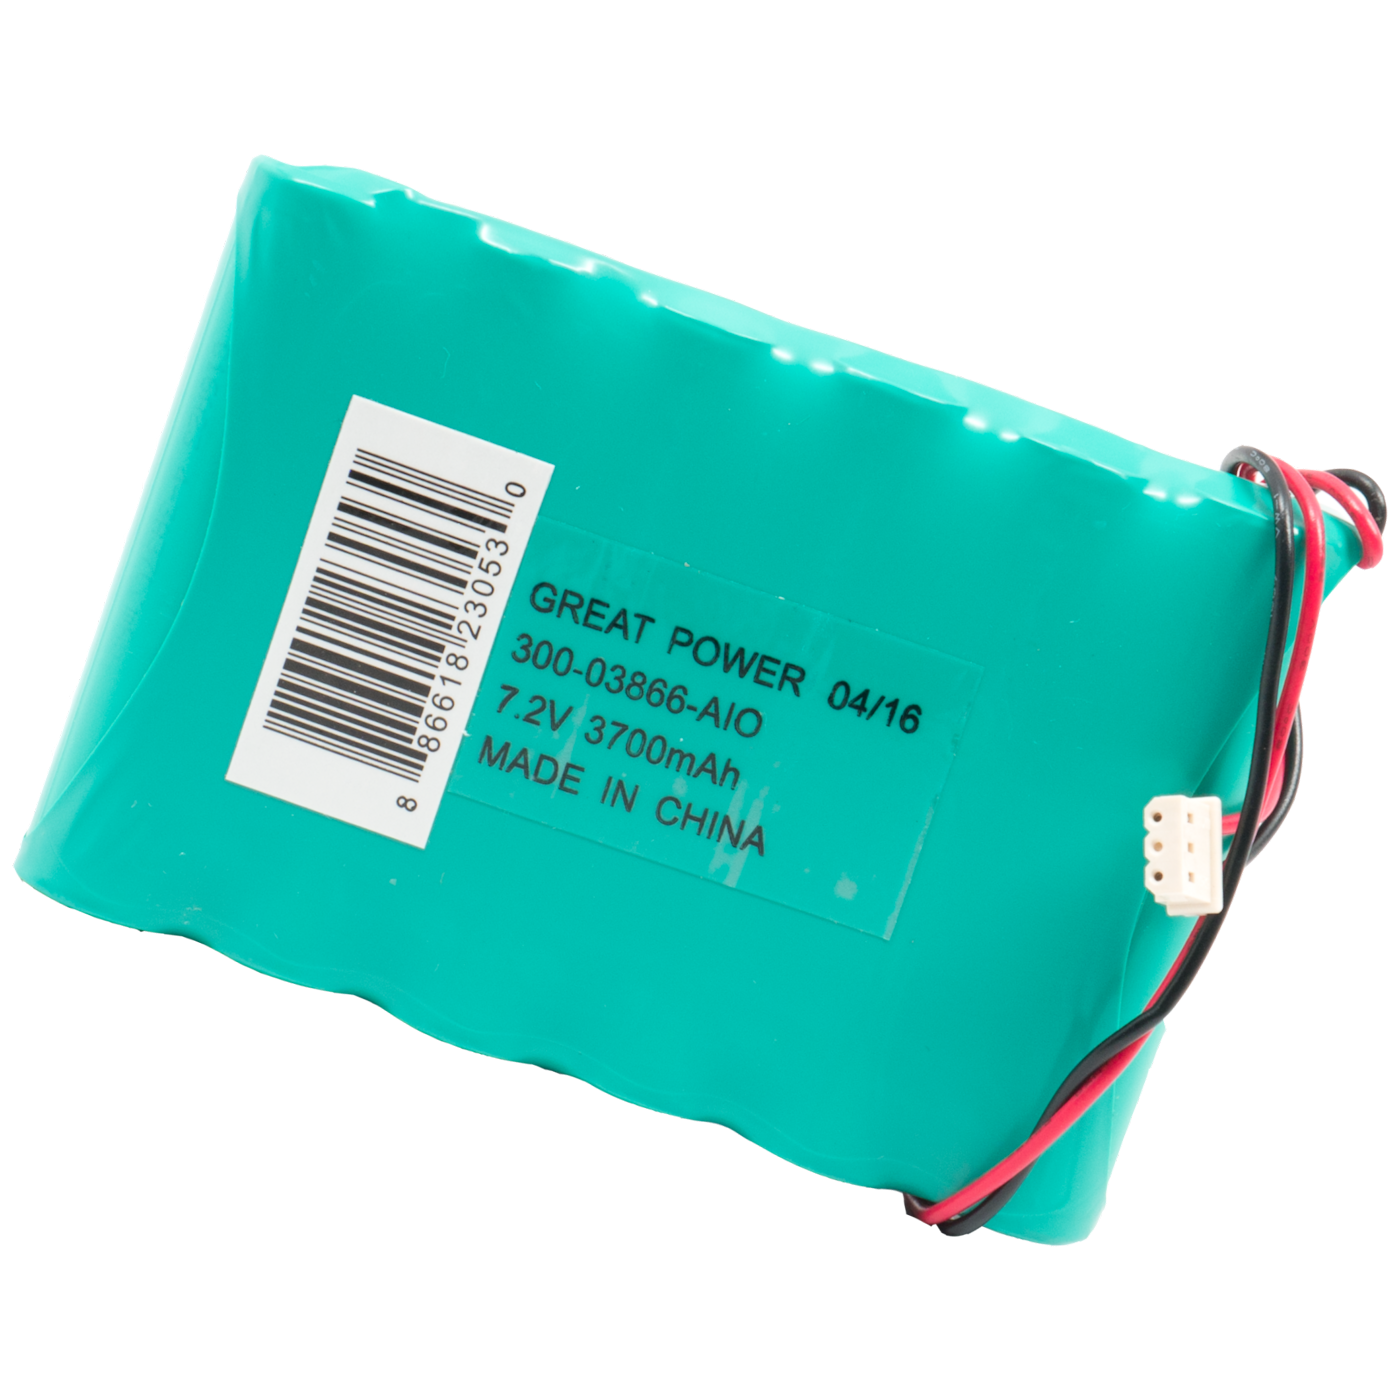 Lcp500 24b honeywell 24 hours backup alarm battery for lyric usa honeywell security diy home lyric controller system battery solutioingenieria Image collections